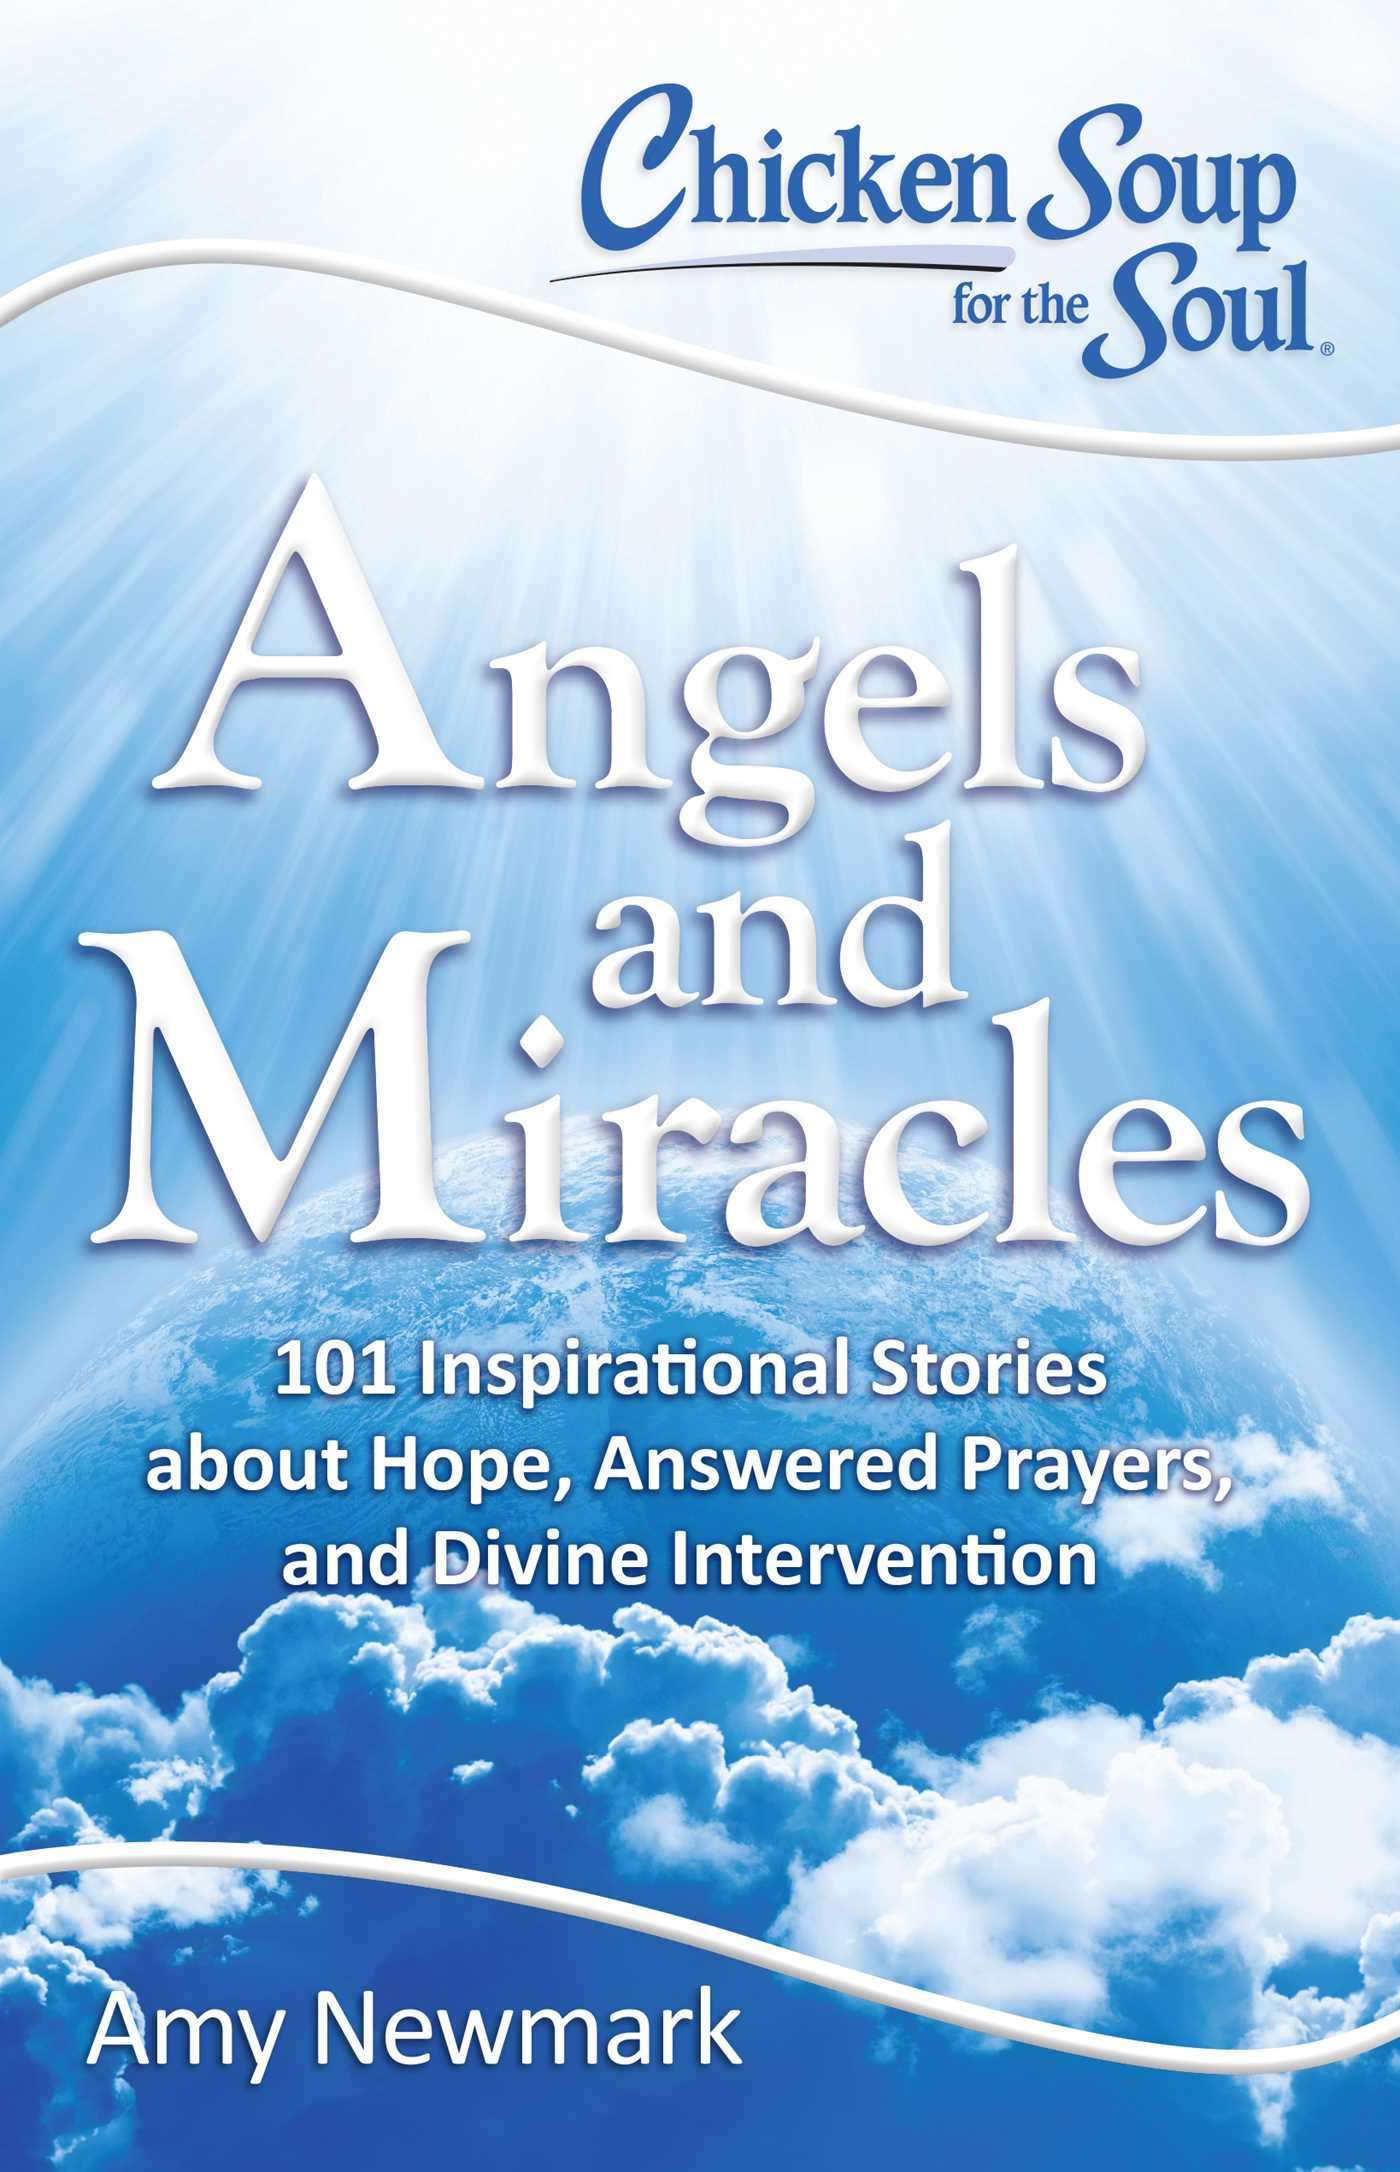 Chicken soup for the soul angels and miracles 9781611599640 hr